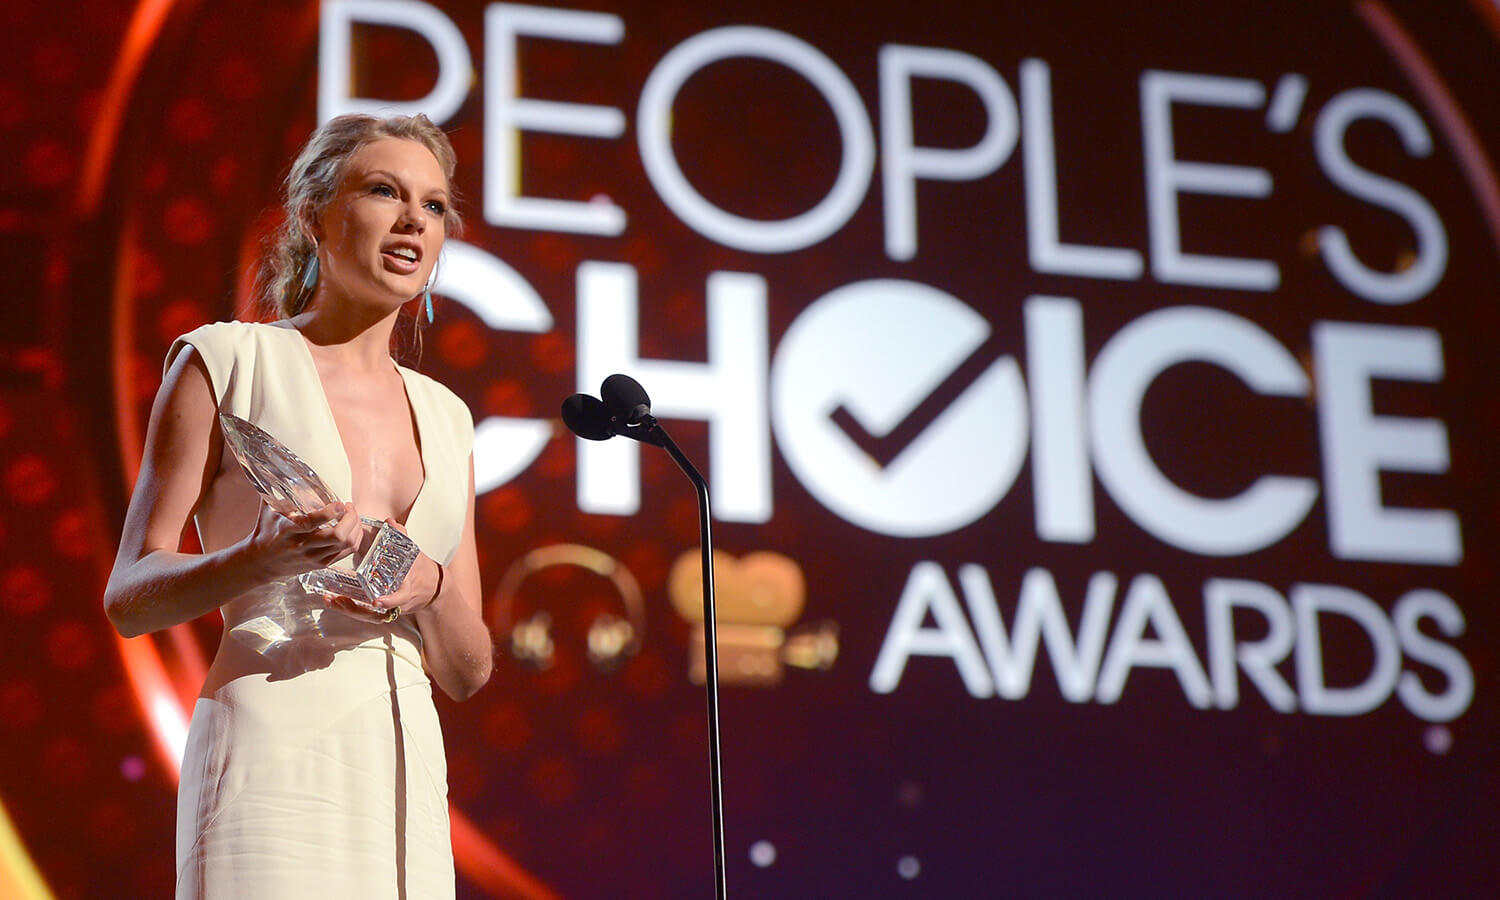 Rivelate le Nomination ai People's Choice Awards